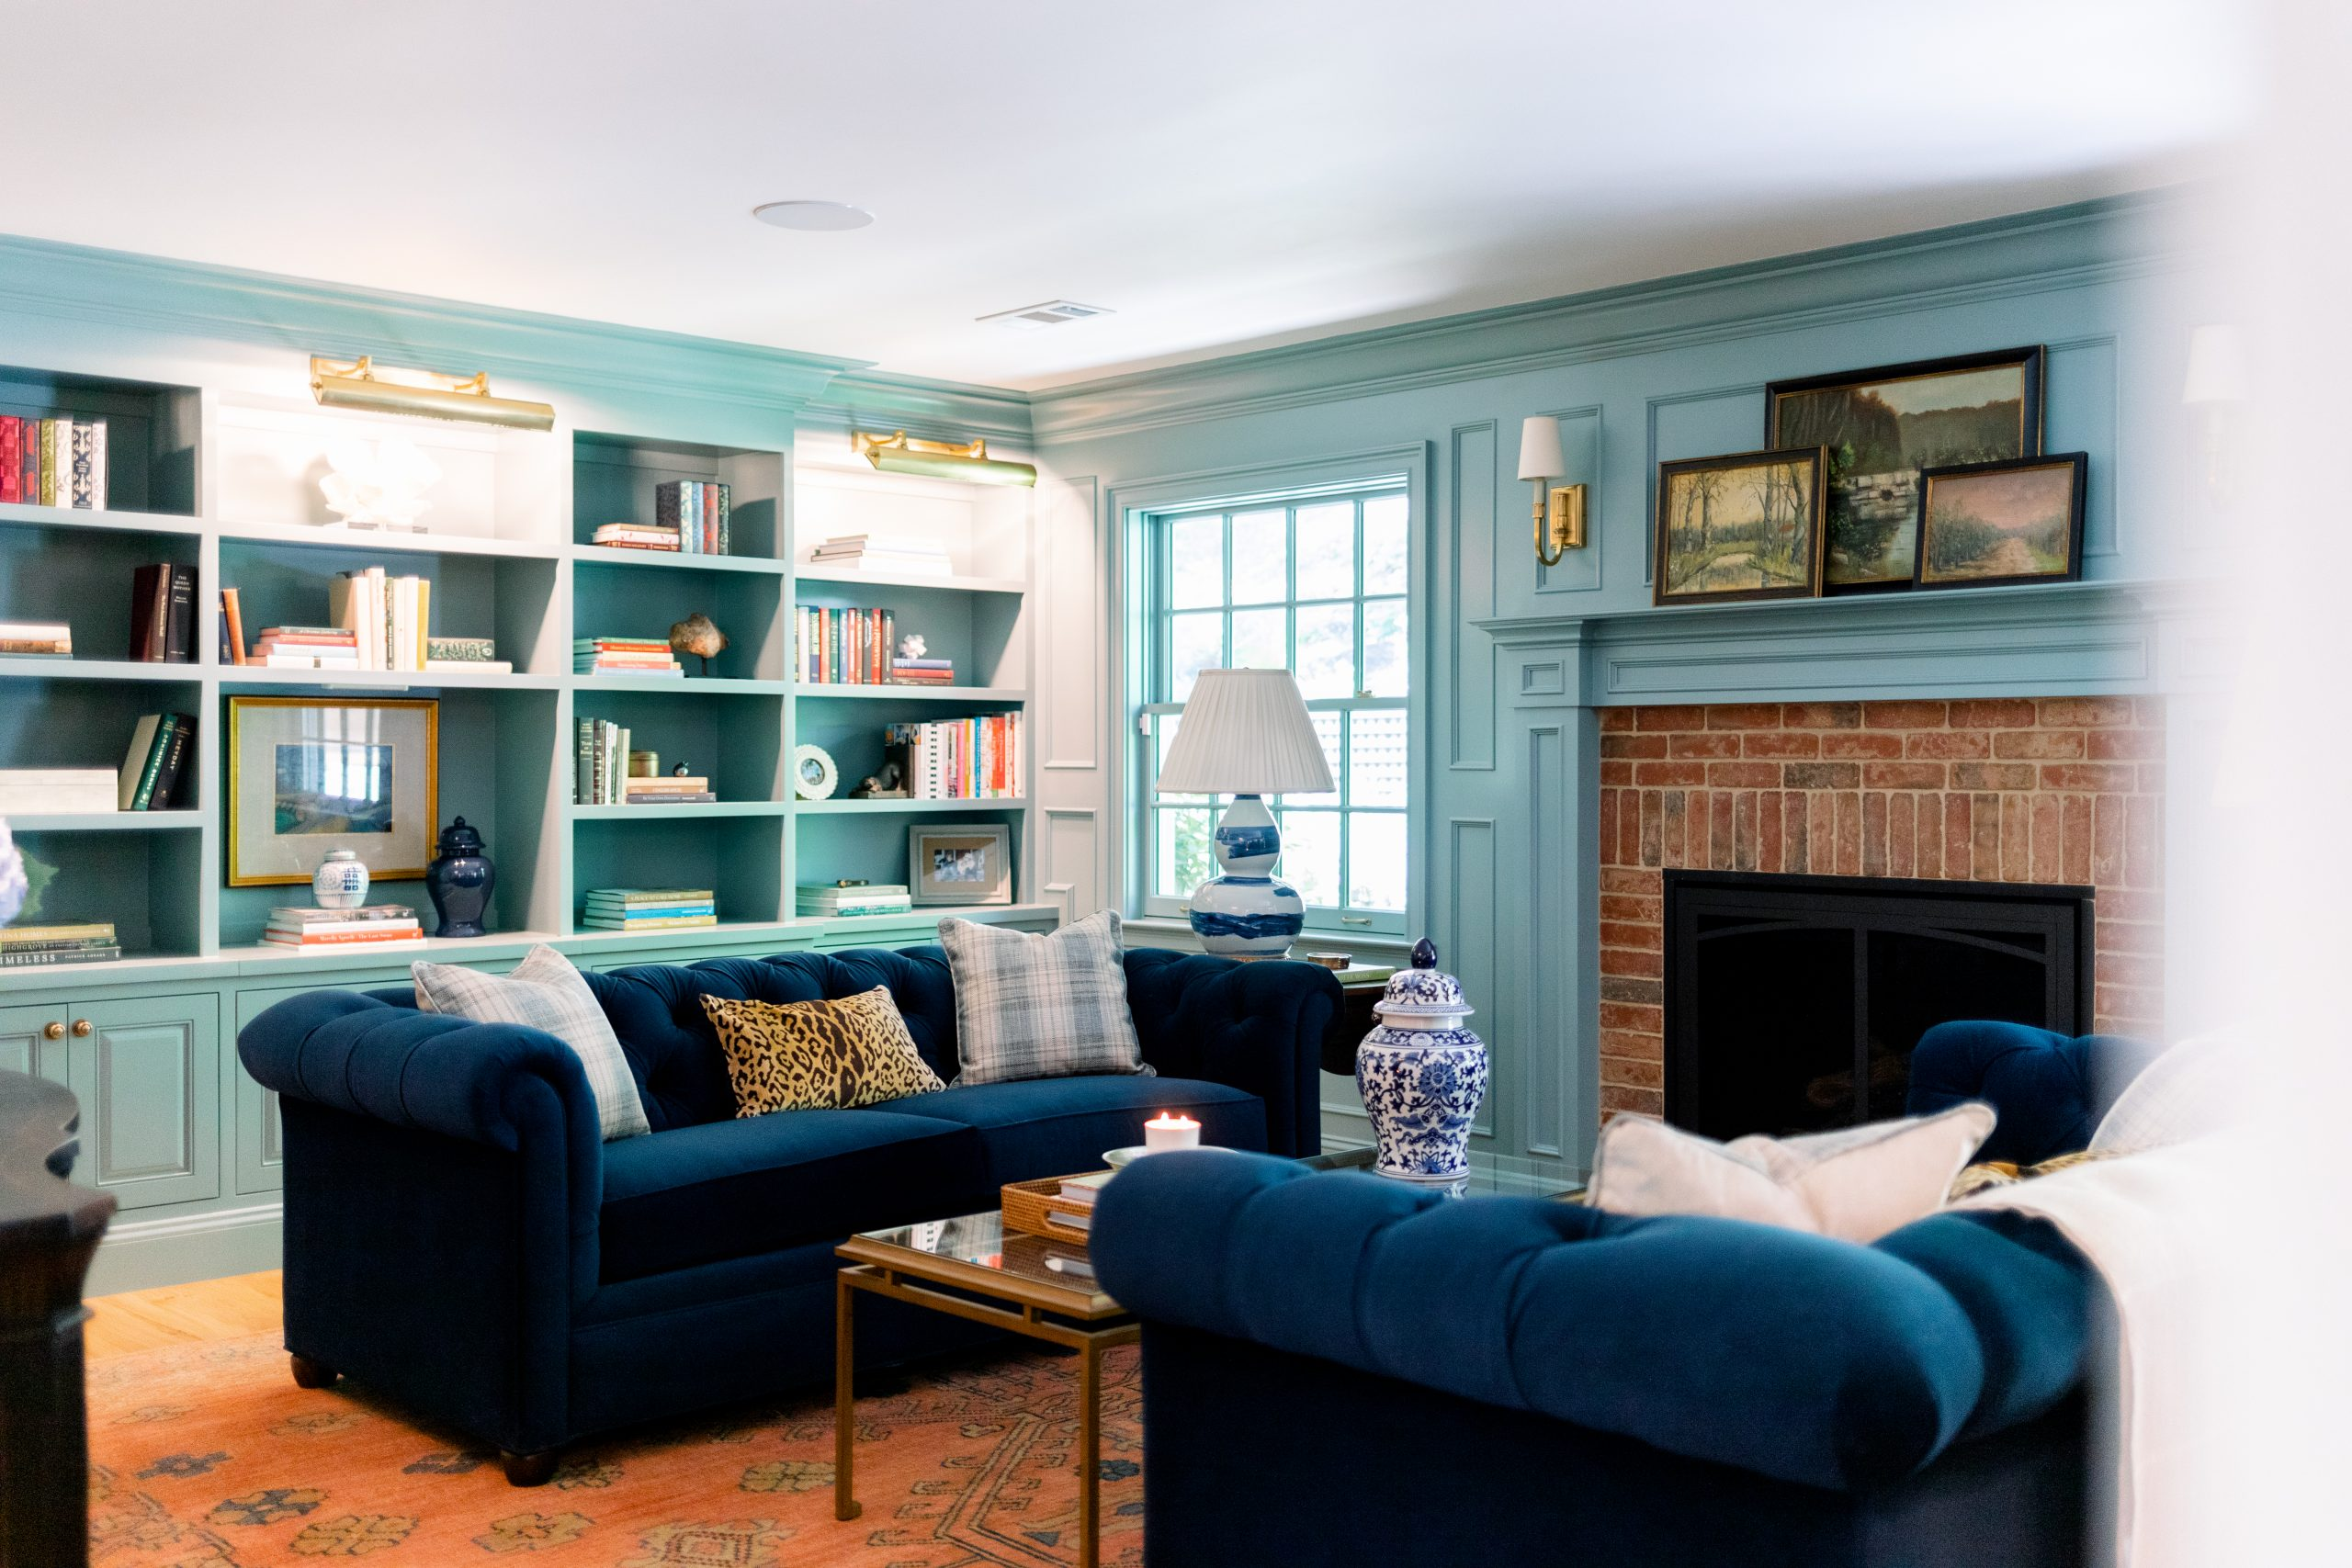 Home Library with blue velvet sofas and book shelves